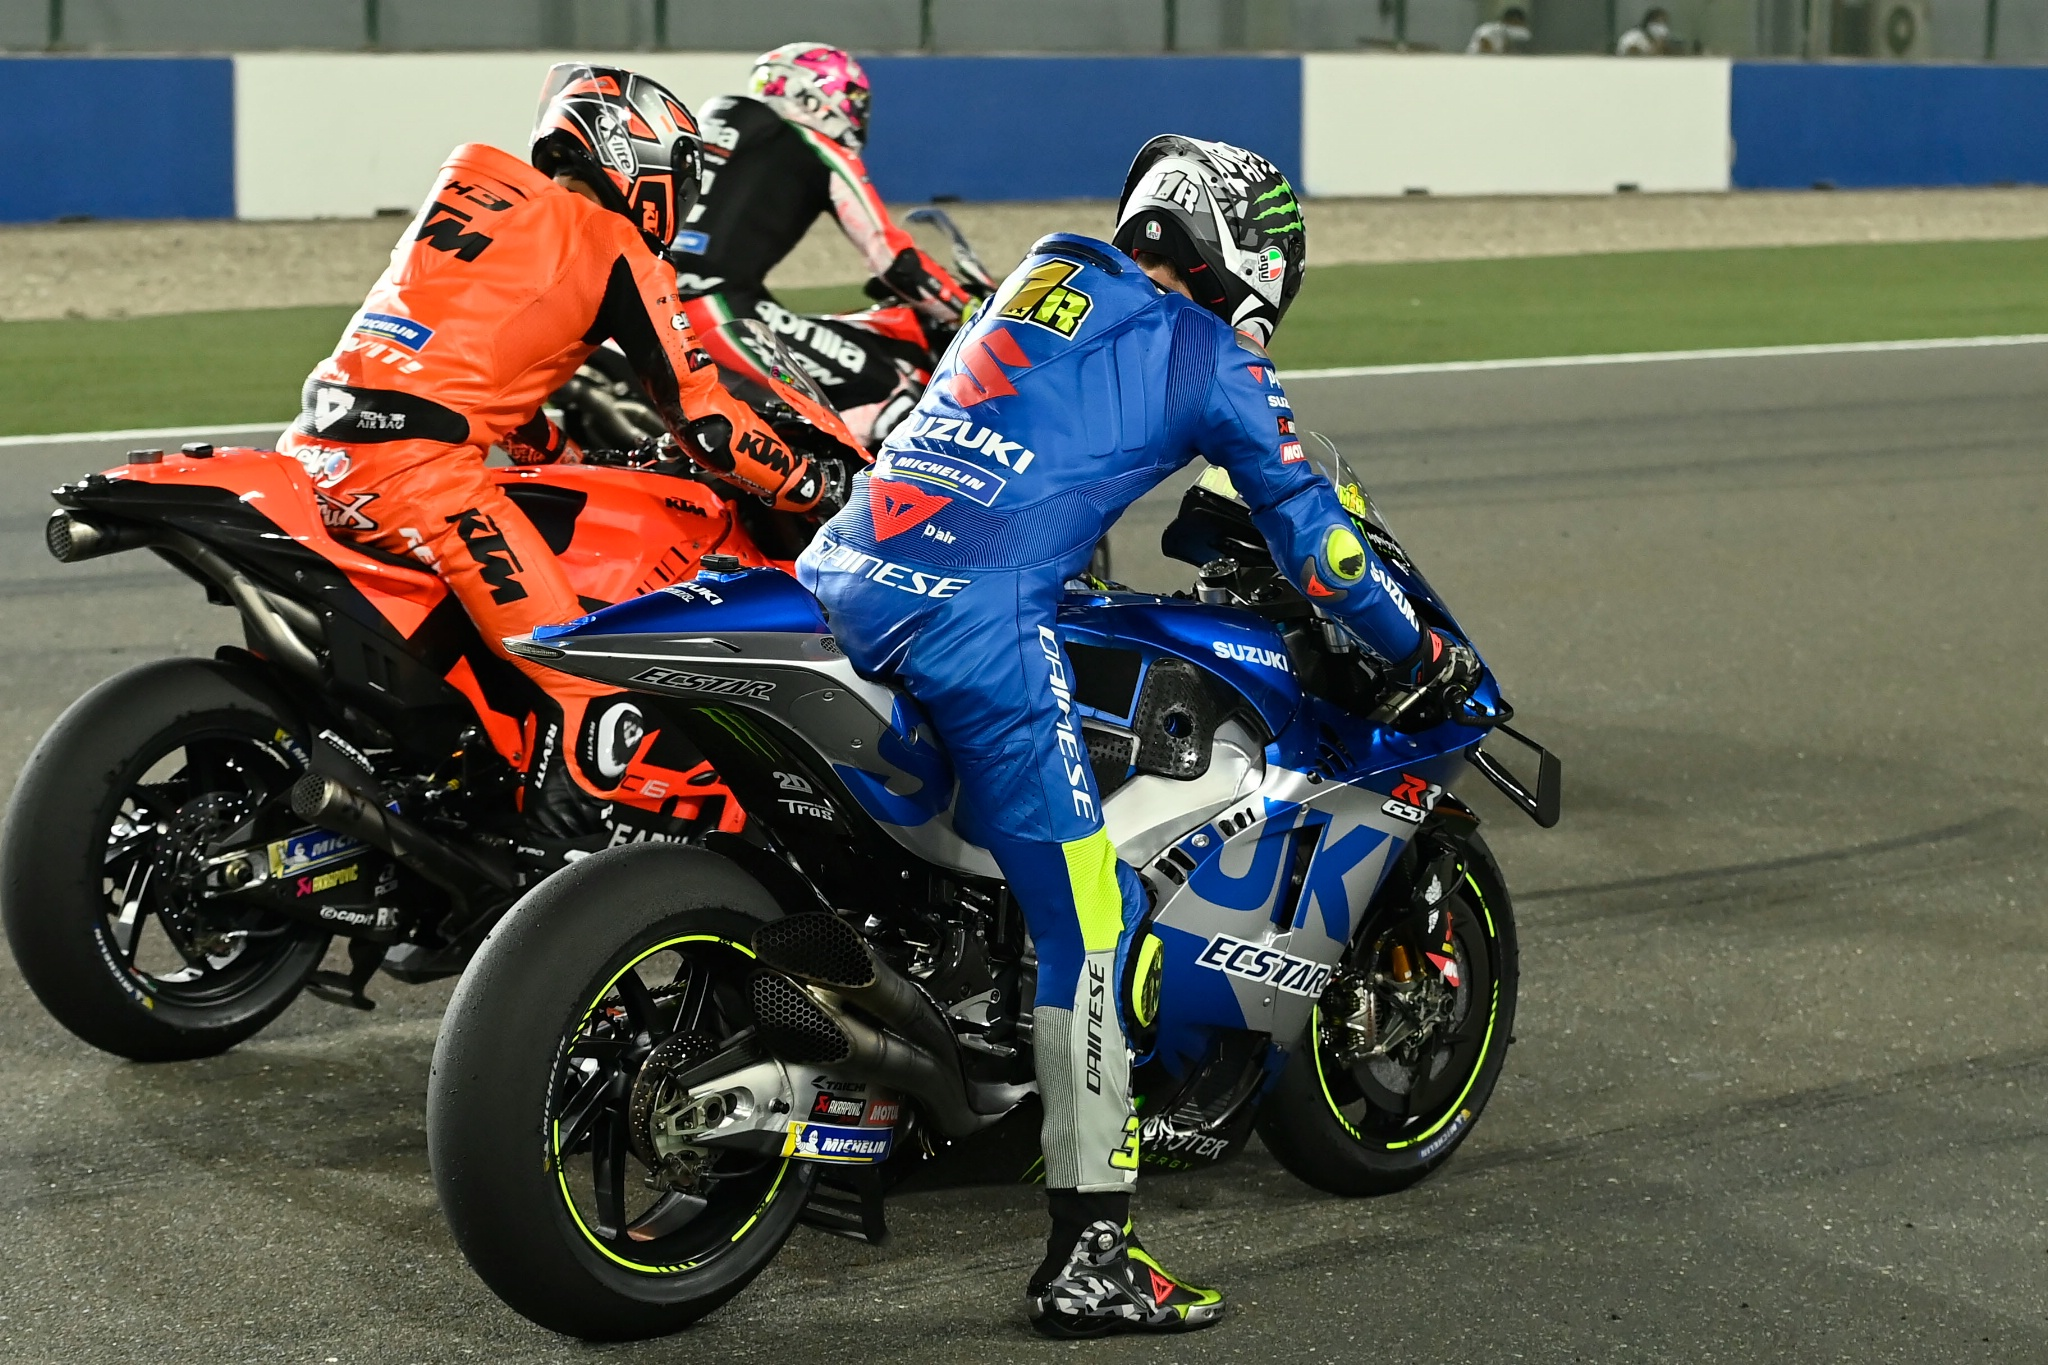 Joan Mir, Practice start, Qatar MotoGP test, 11 March 2021